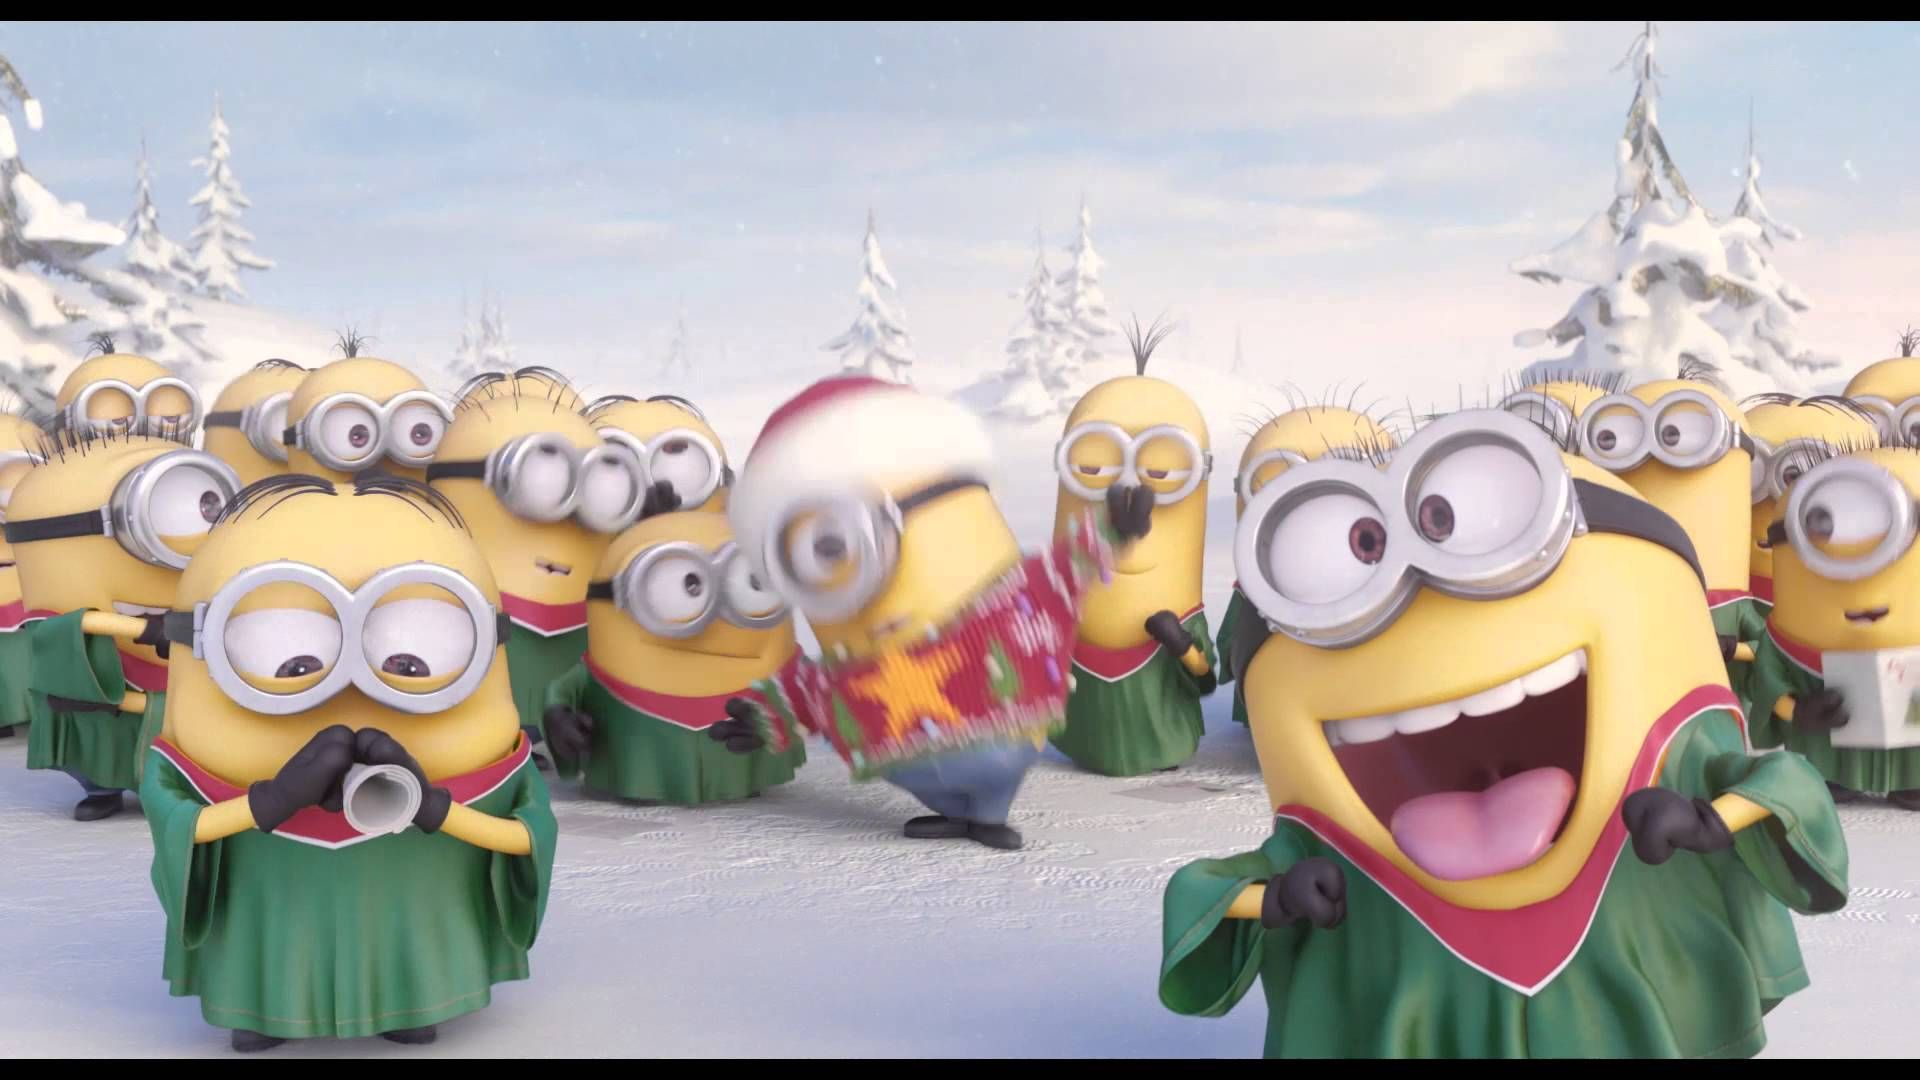 Happy thanksgiving merry christmas minions go caroling minions go caroling in this holiday greeting video funsubstance tv kristyandbryce Choice Image